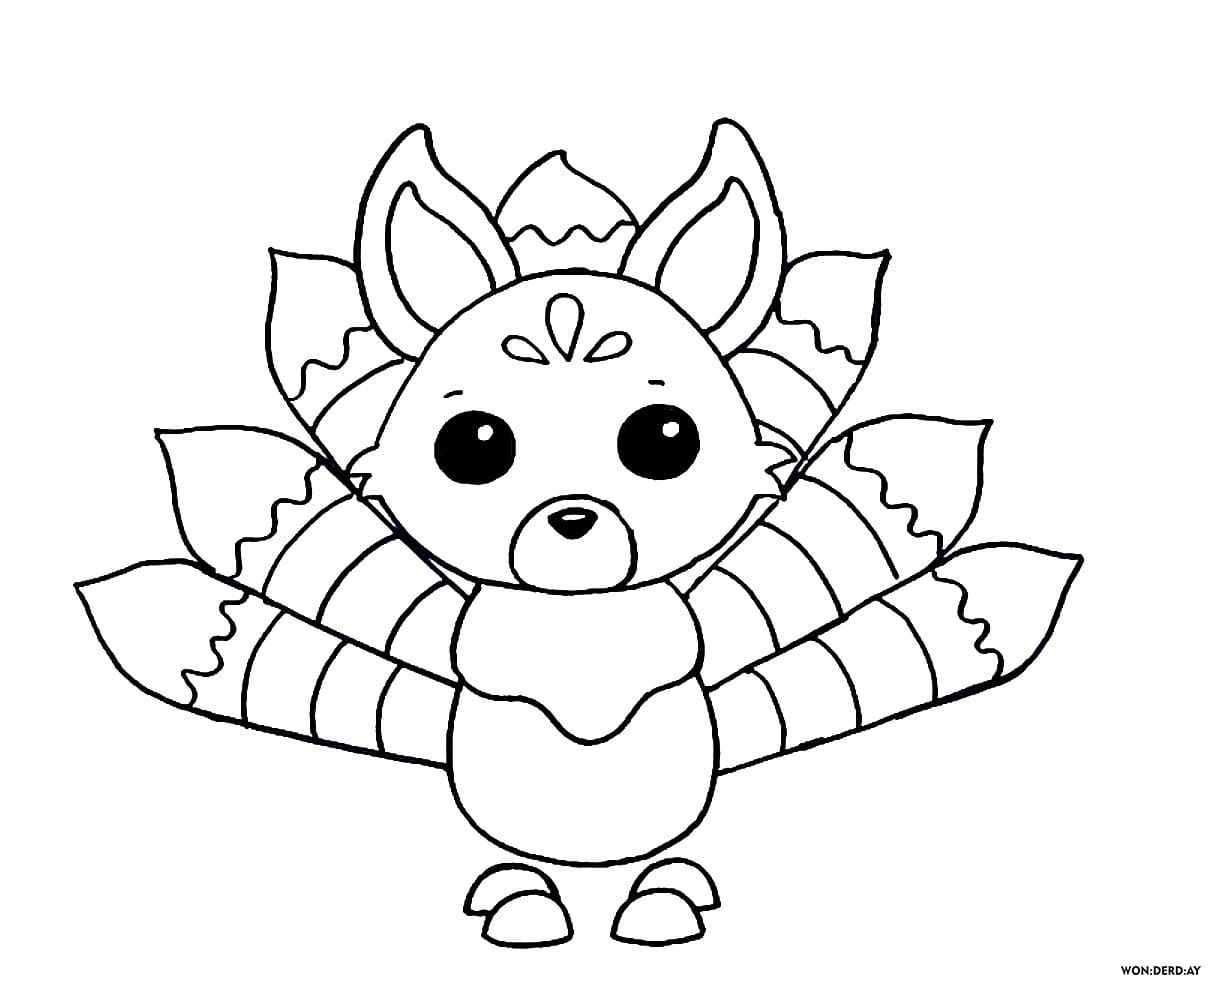 Download Or Print This Amazing Coloring Page Coloring Pages Adopt Me Print For Free Wonder Day Com In 2021 Ausmalbilder Lustige Malvorlagen Malvorlagen Tiere